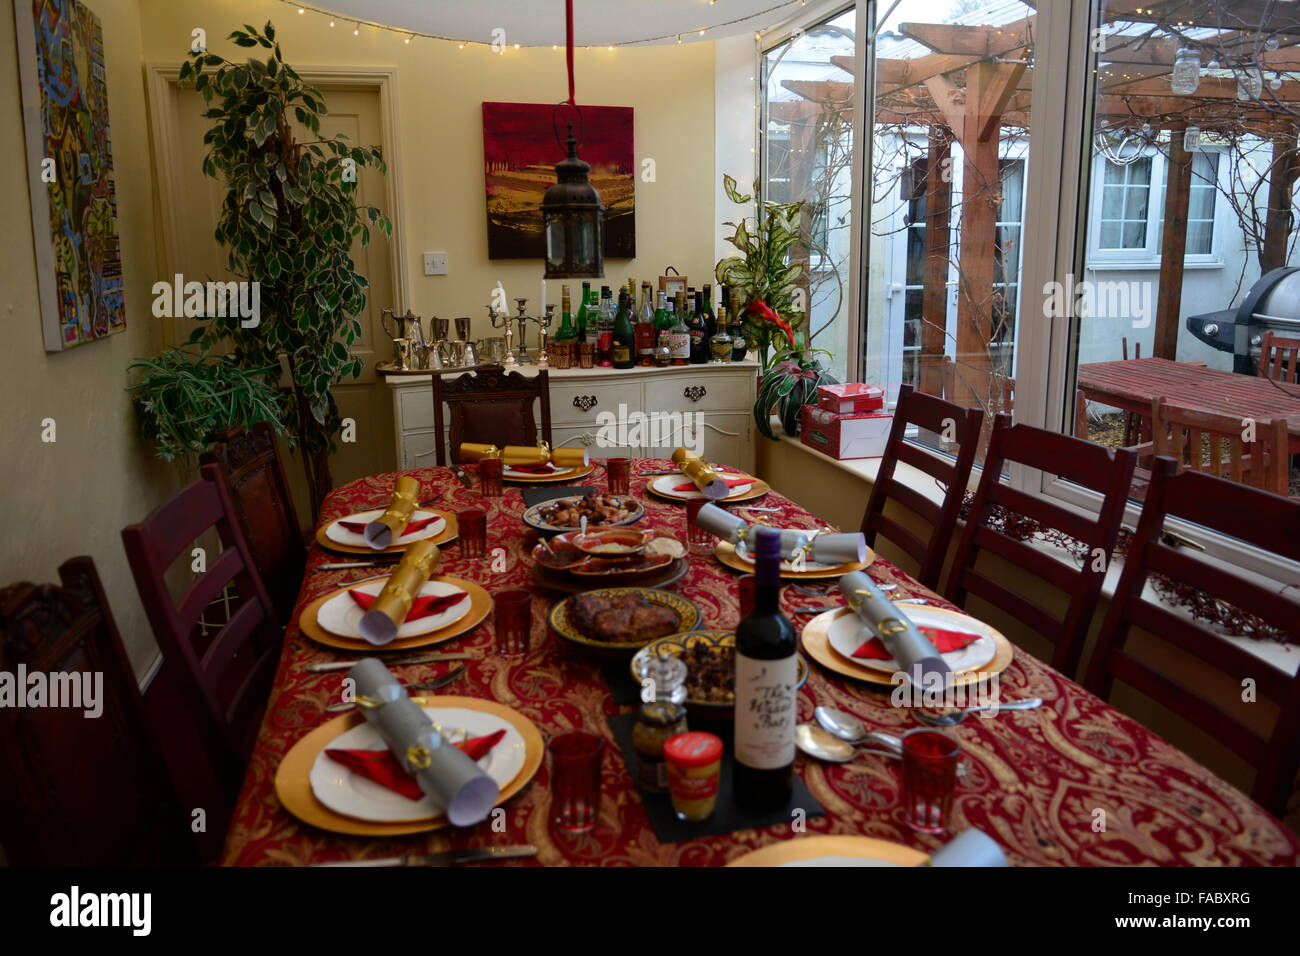 Home made food served on Christmas Day in a family UK home. - Stock Image